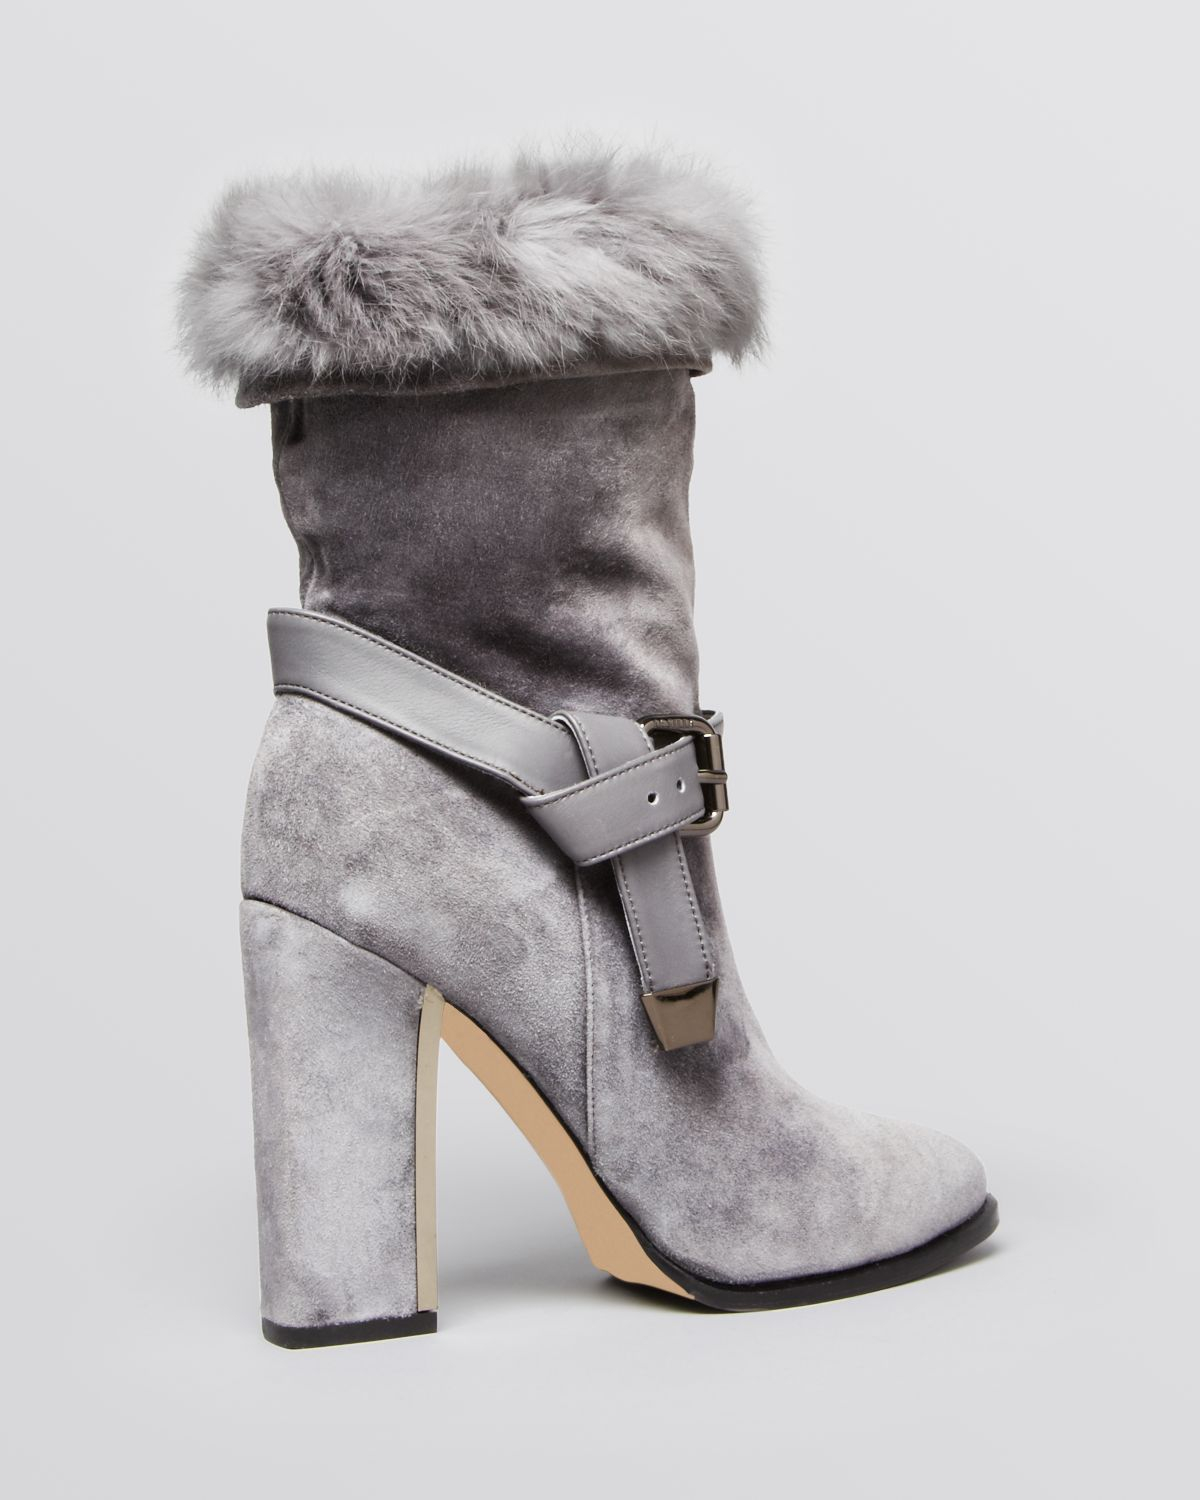 Le Silla Pointed Toe High Heel Fur Platform Boots In Gray